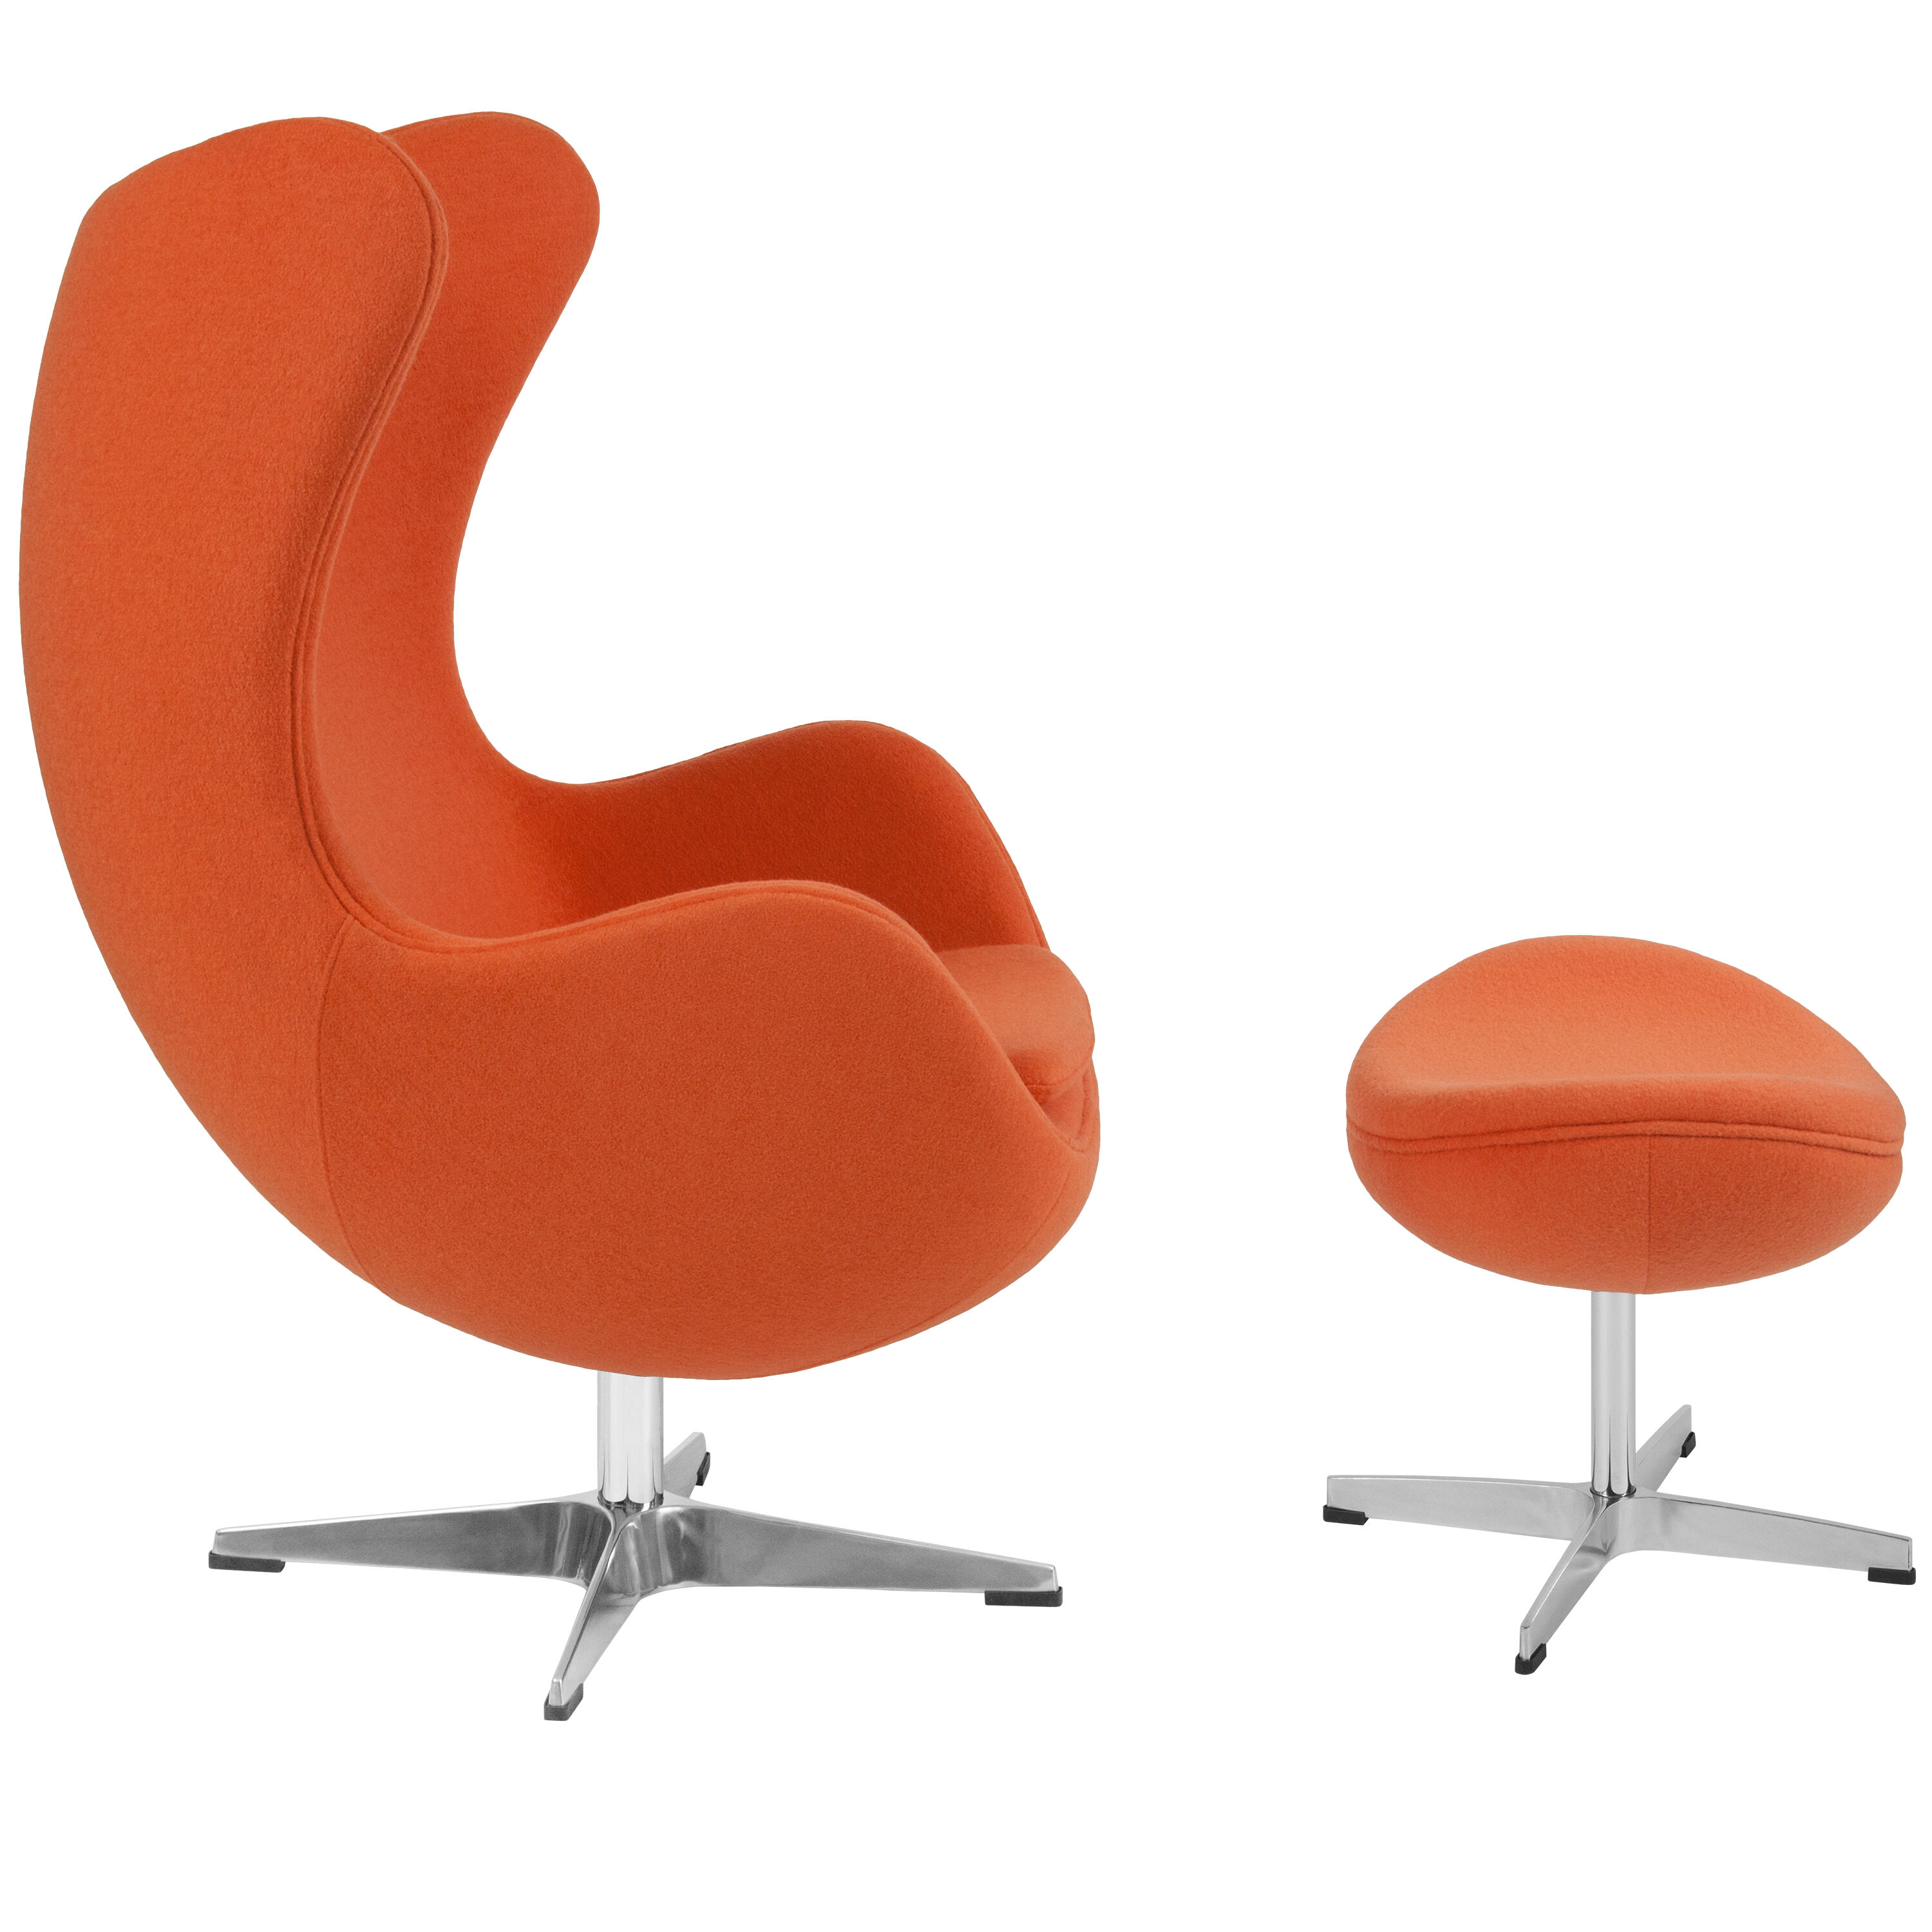 Egg Chair For Sale Orange Wool Fabric Egg Chair With Tilt Lock Mechanism And Ottoman